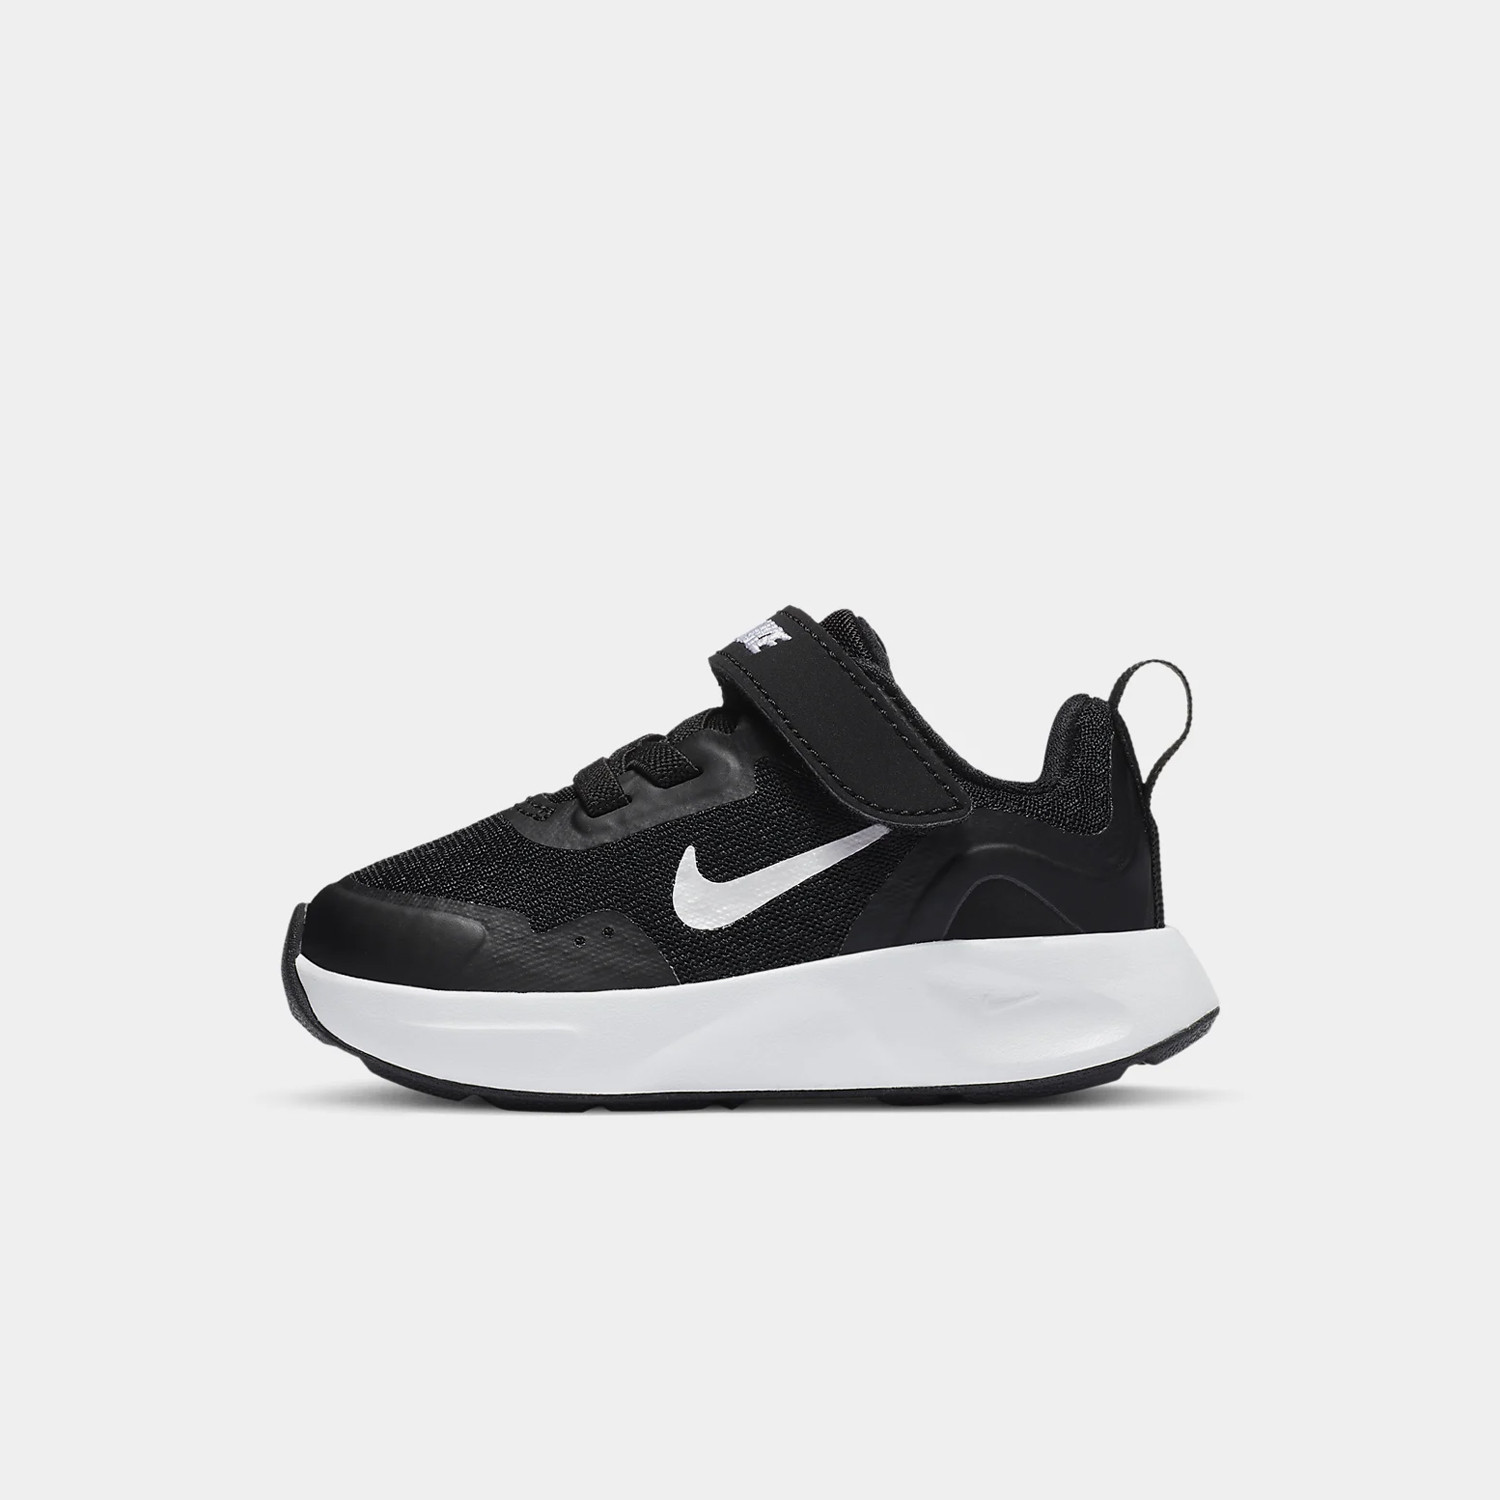 Nike Wearallday Βρεφικά Παπούτσια (9000054758_1480)